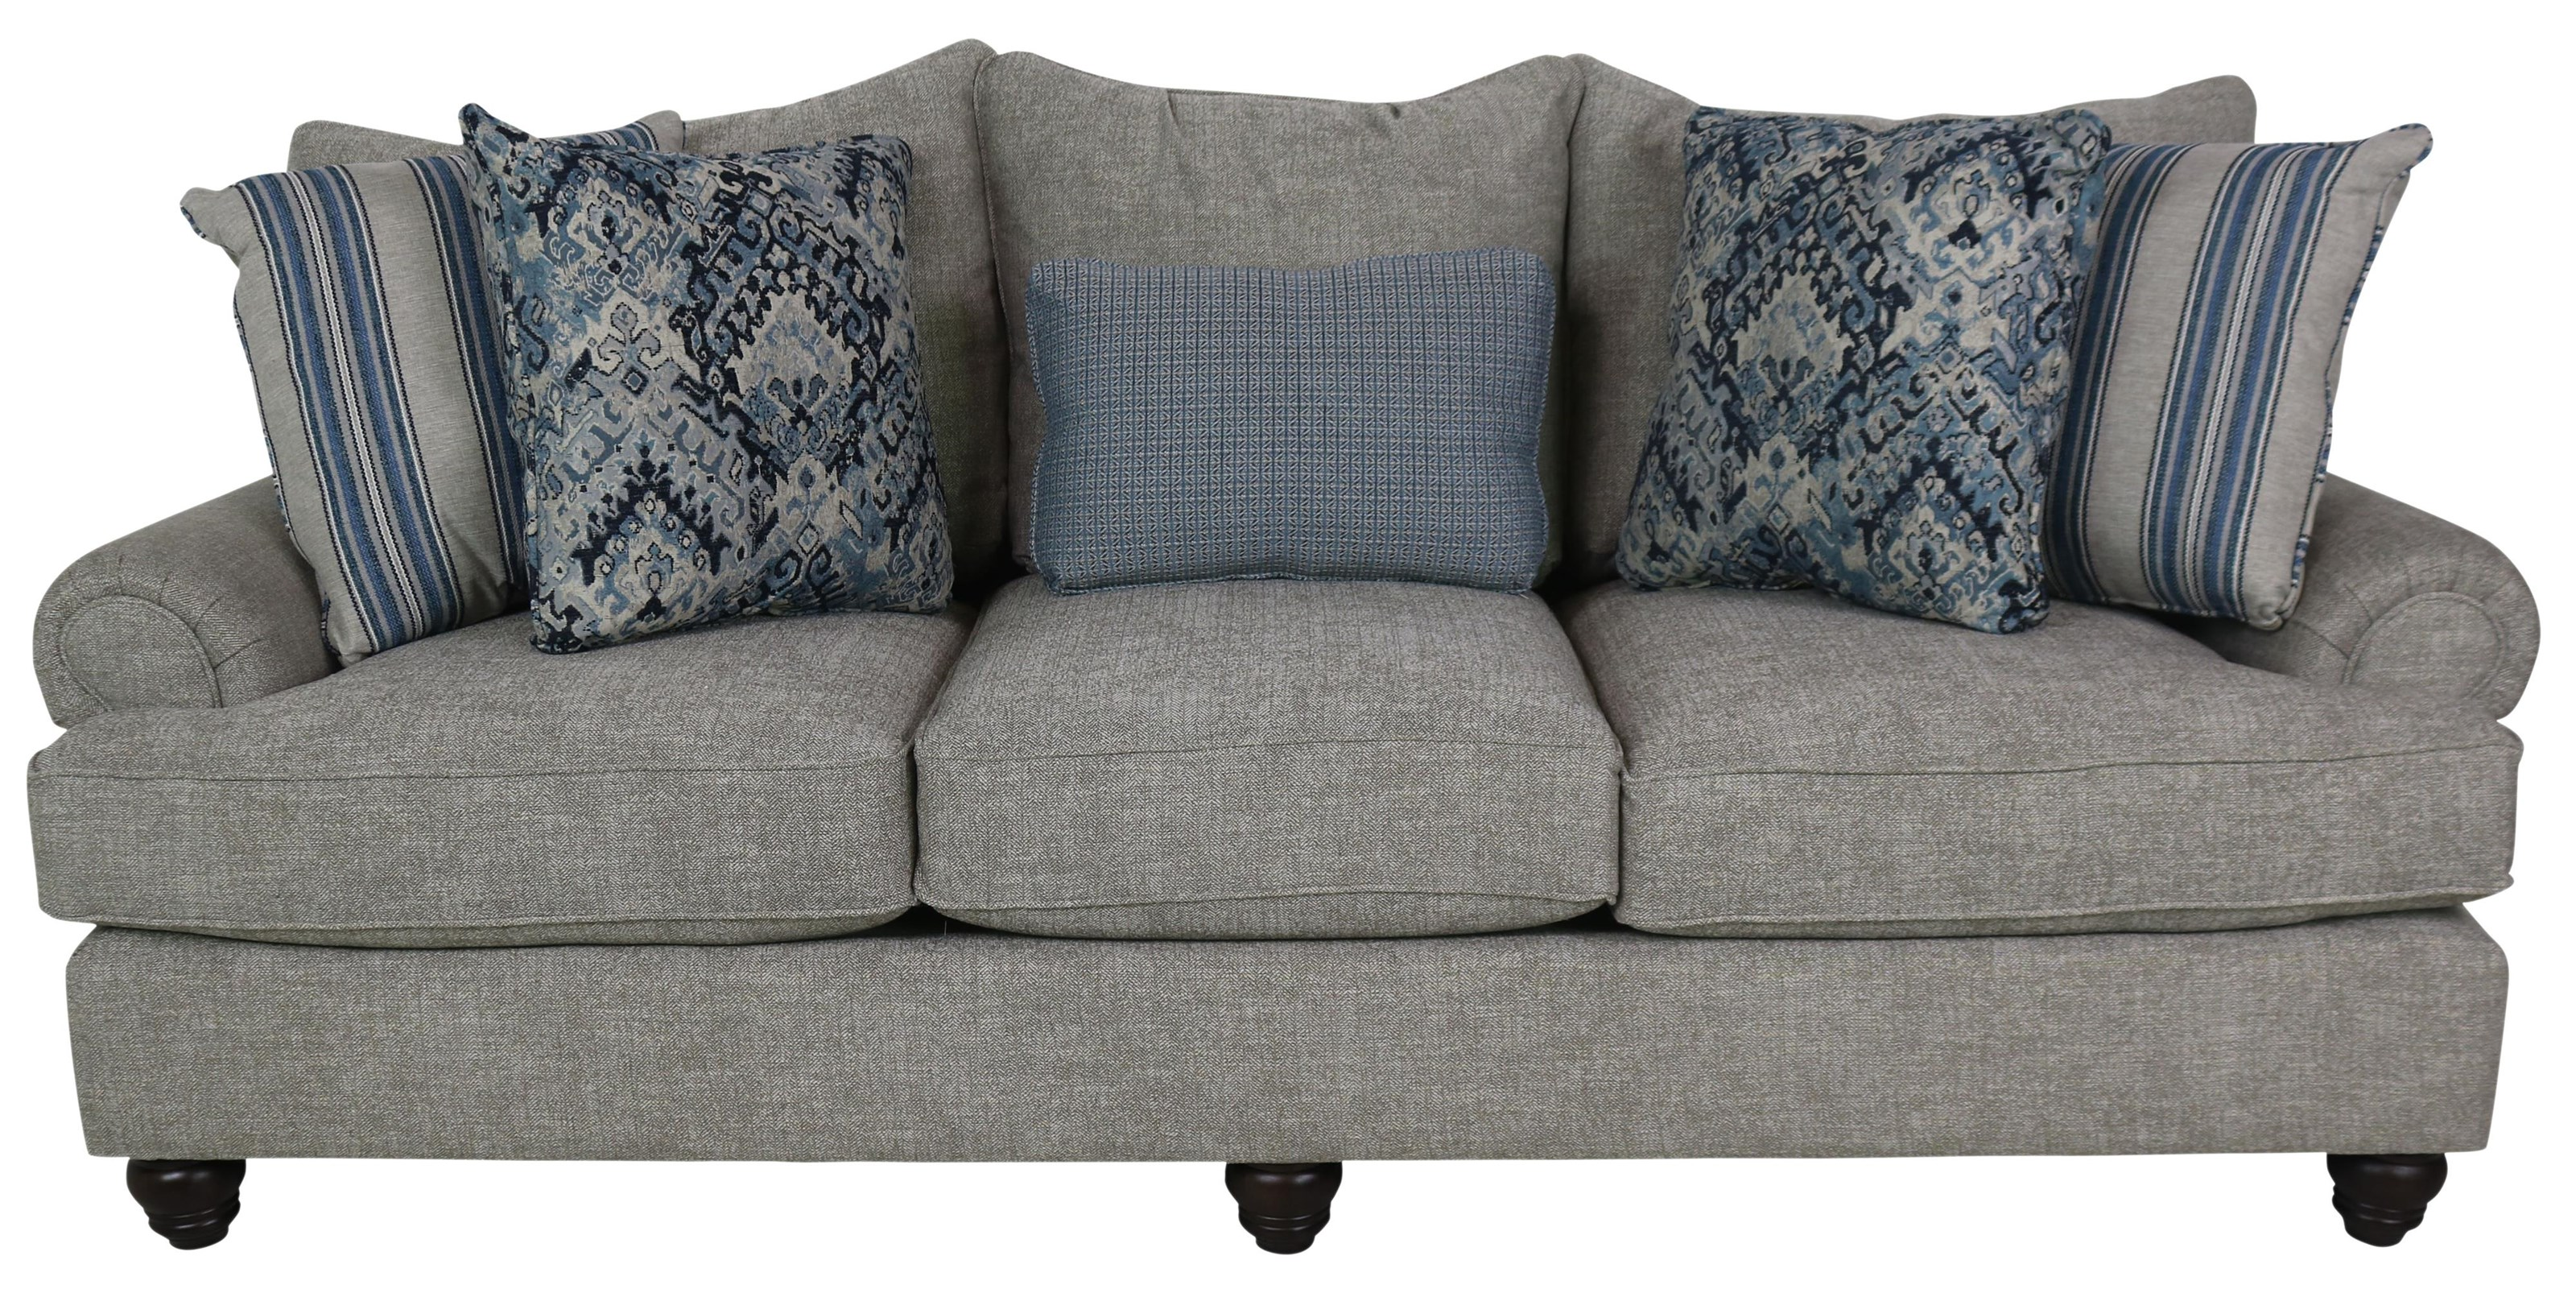 7970 Sofa by Cozi Life Upholstery at Sprintz Furniture